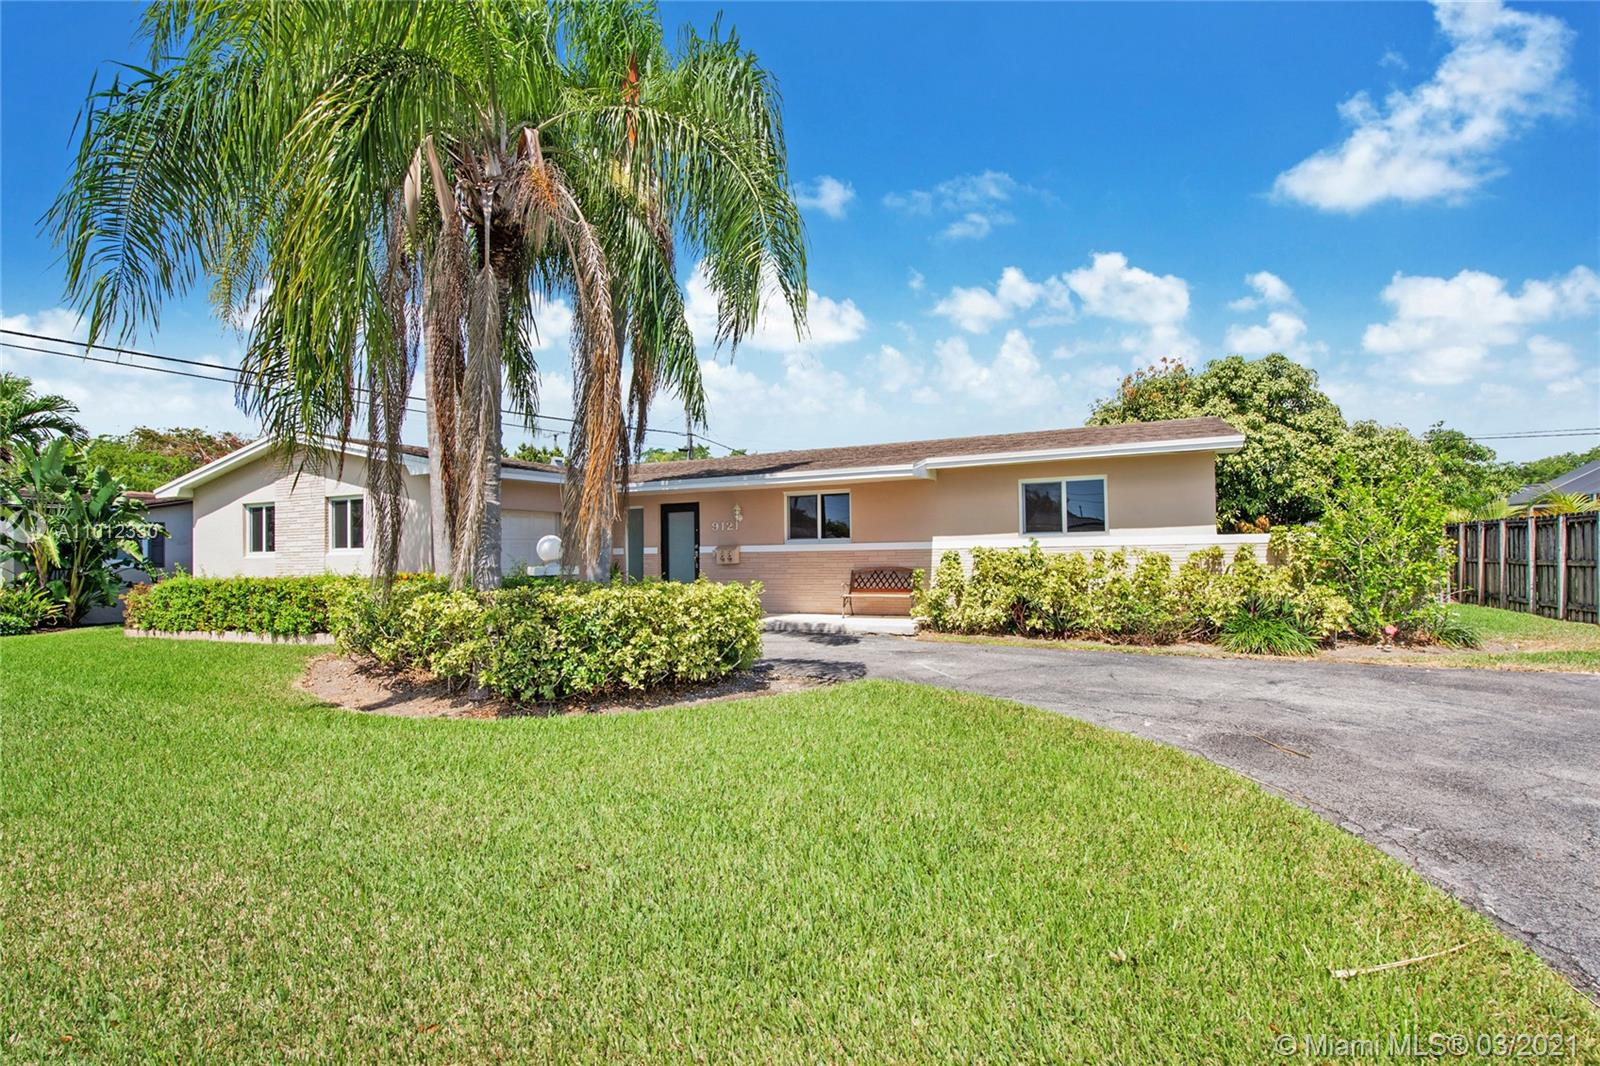 Details for 9121 66th Ter, Miami, FL 33173